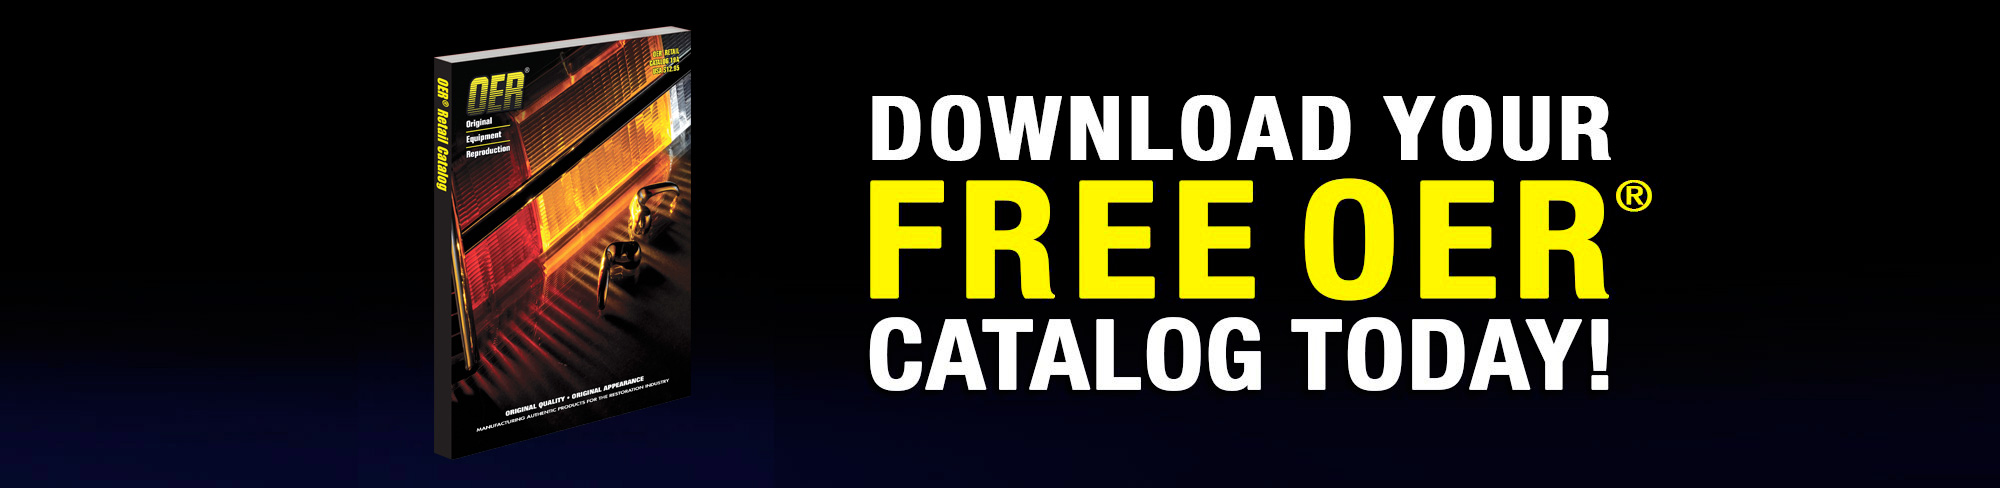 download-OER-catalog only-1